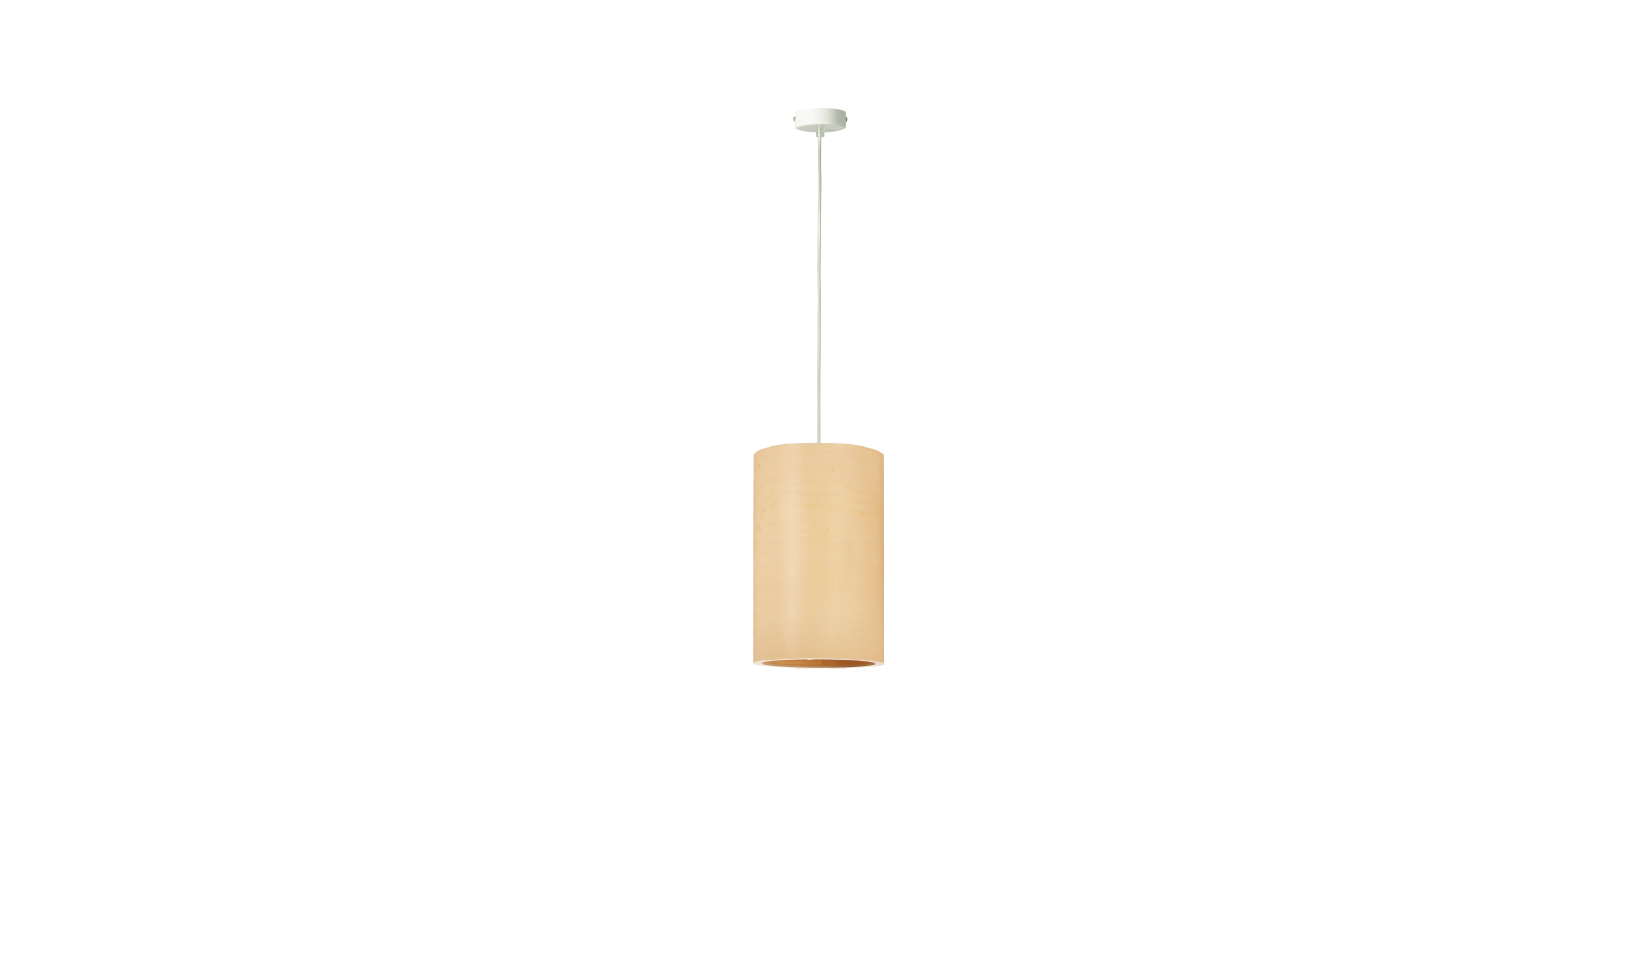 dreizehngrad pendant lamp model Funk 16/26P maple veneer lamp design lamp